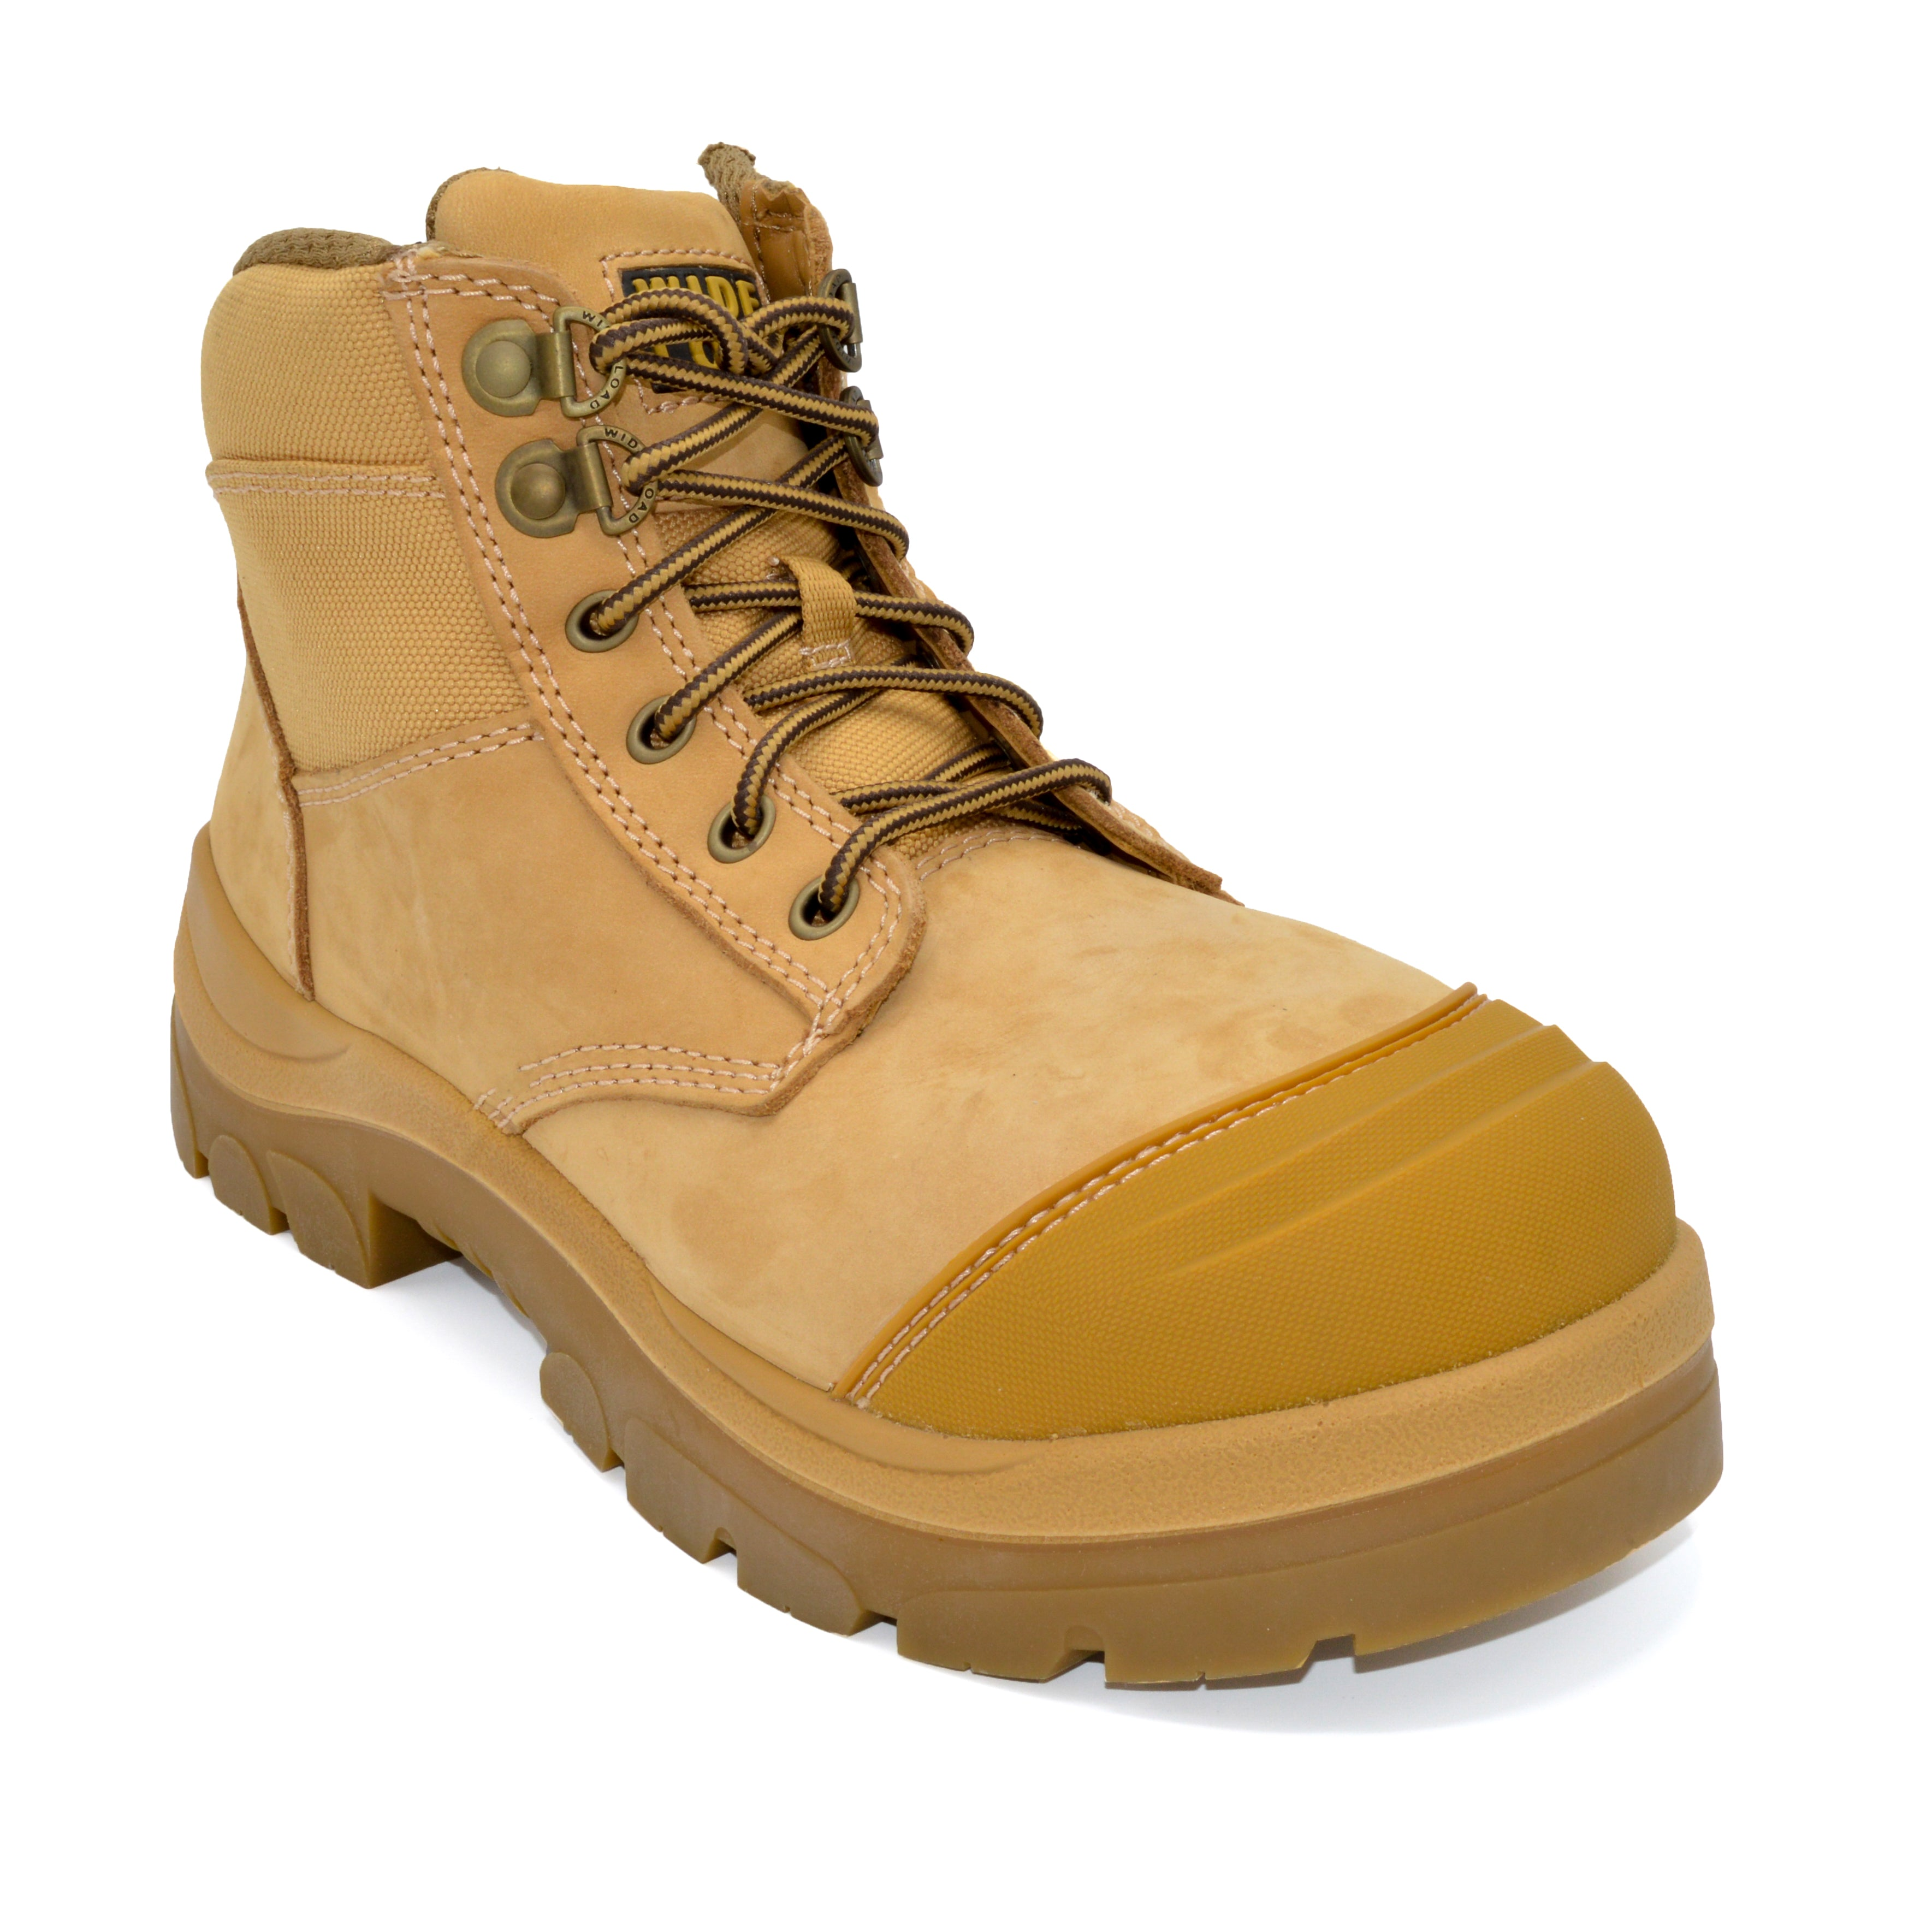 WideLoad 690WZ Wide Fit Safety Boot - Zip - Beige - 6E Fit